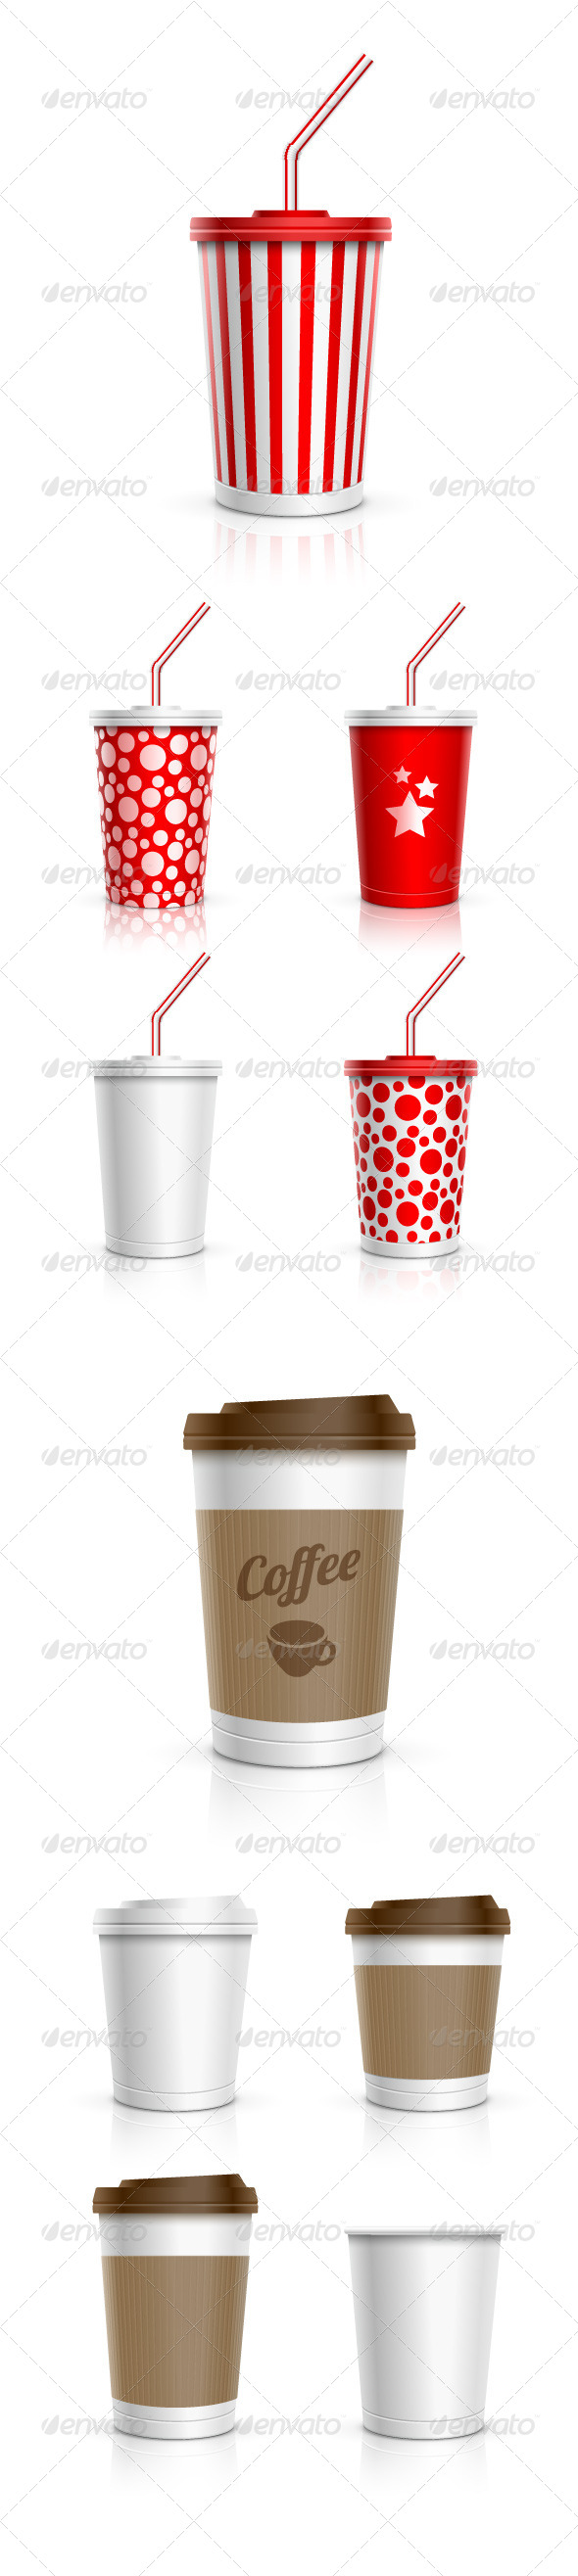 GraphicRiver Disposable Beverage Cup Collection 7846919